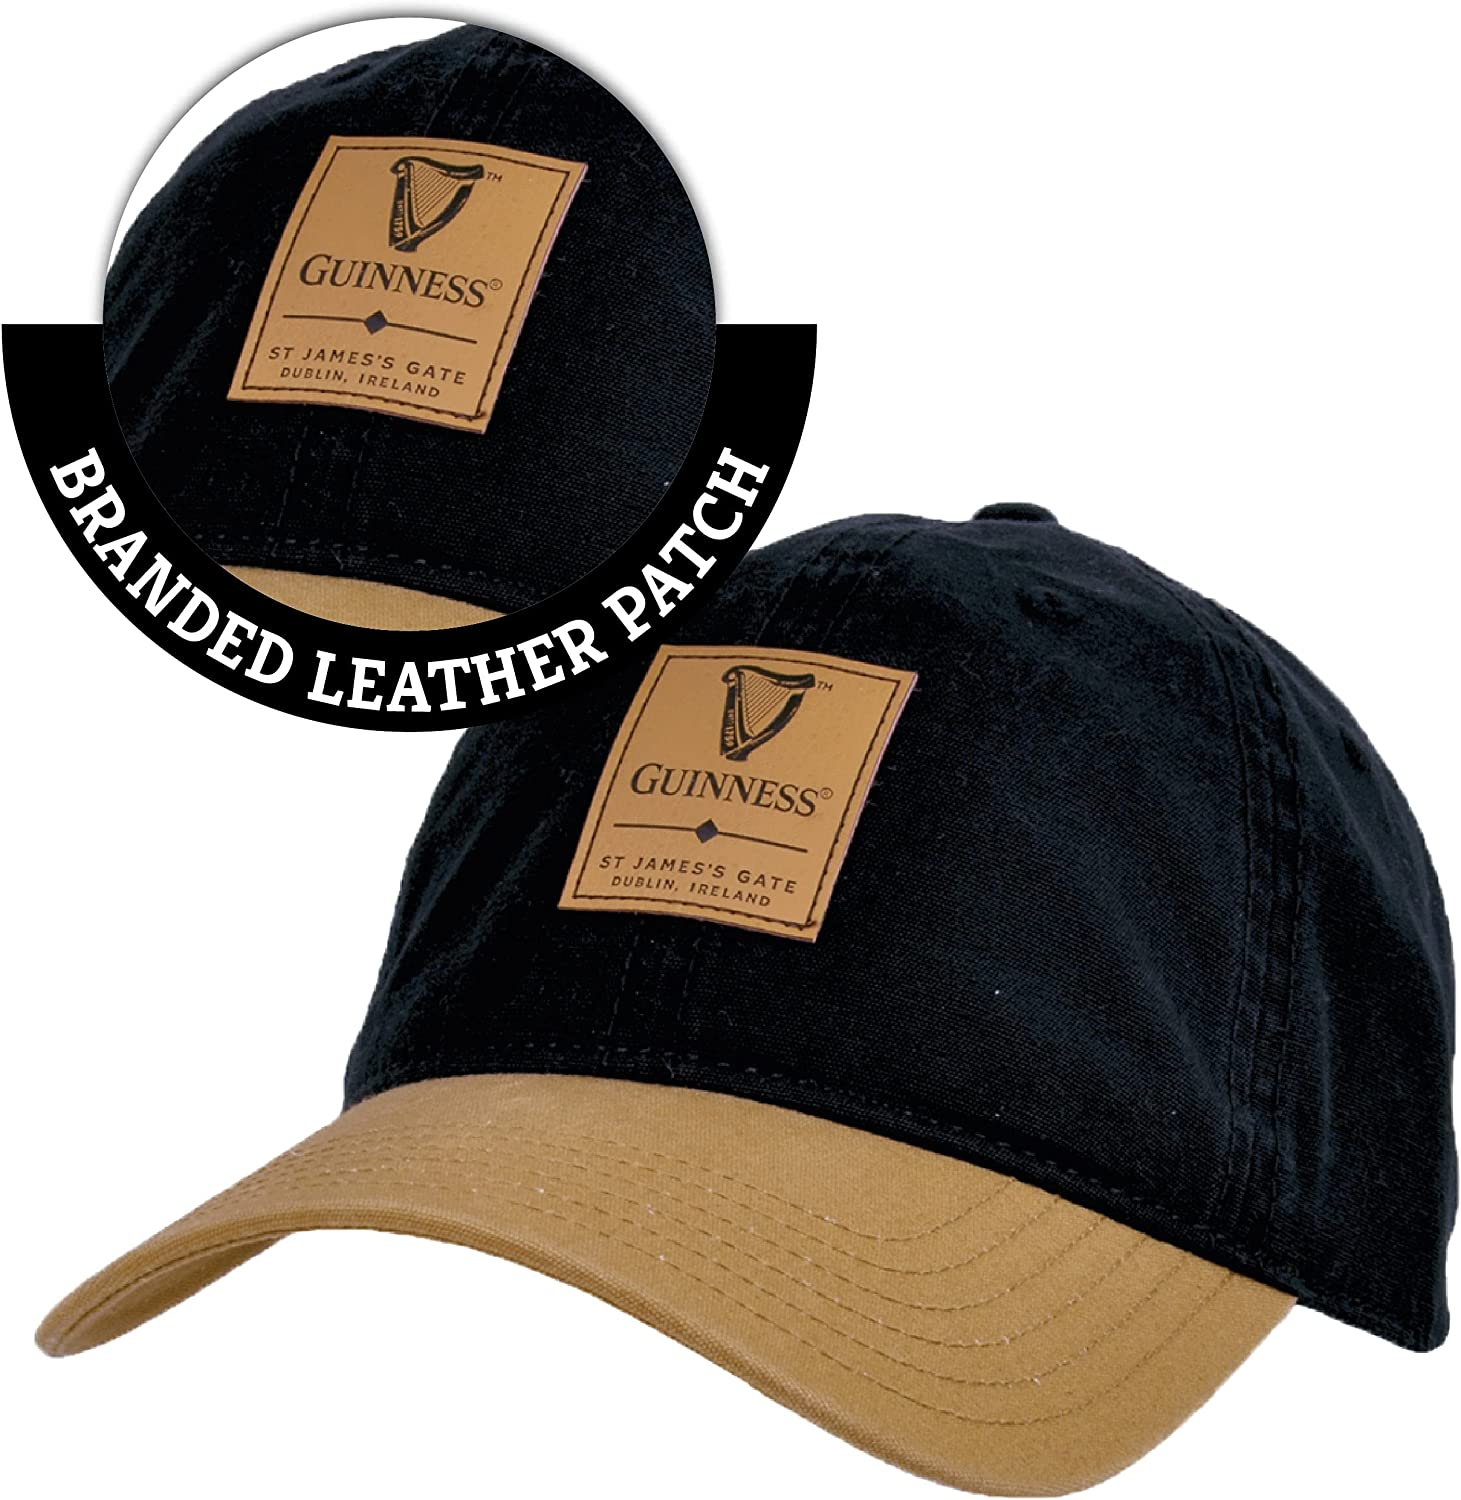 Guinness Black & Caramel Baseball Cap with Leather Patch